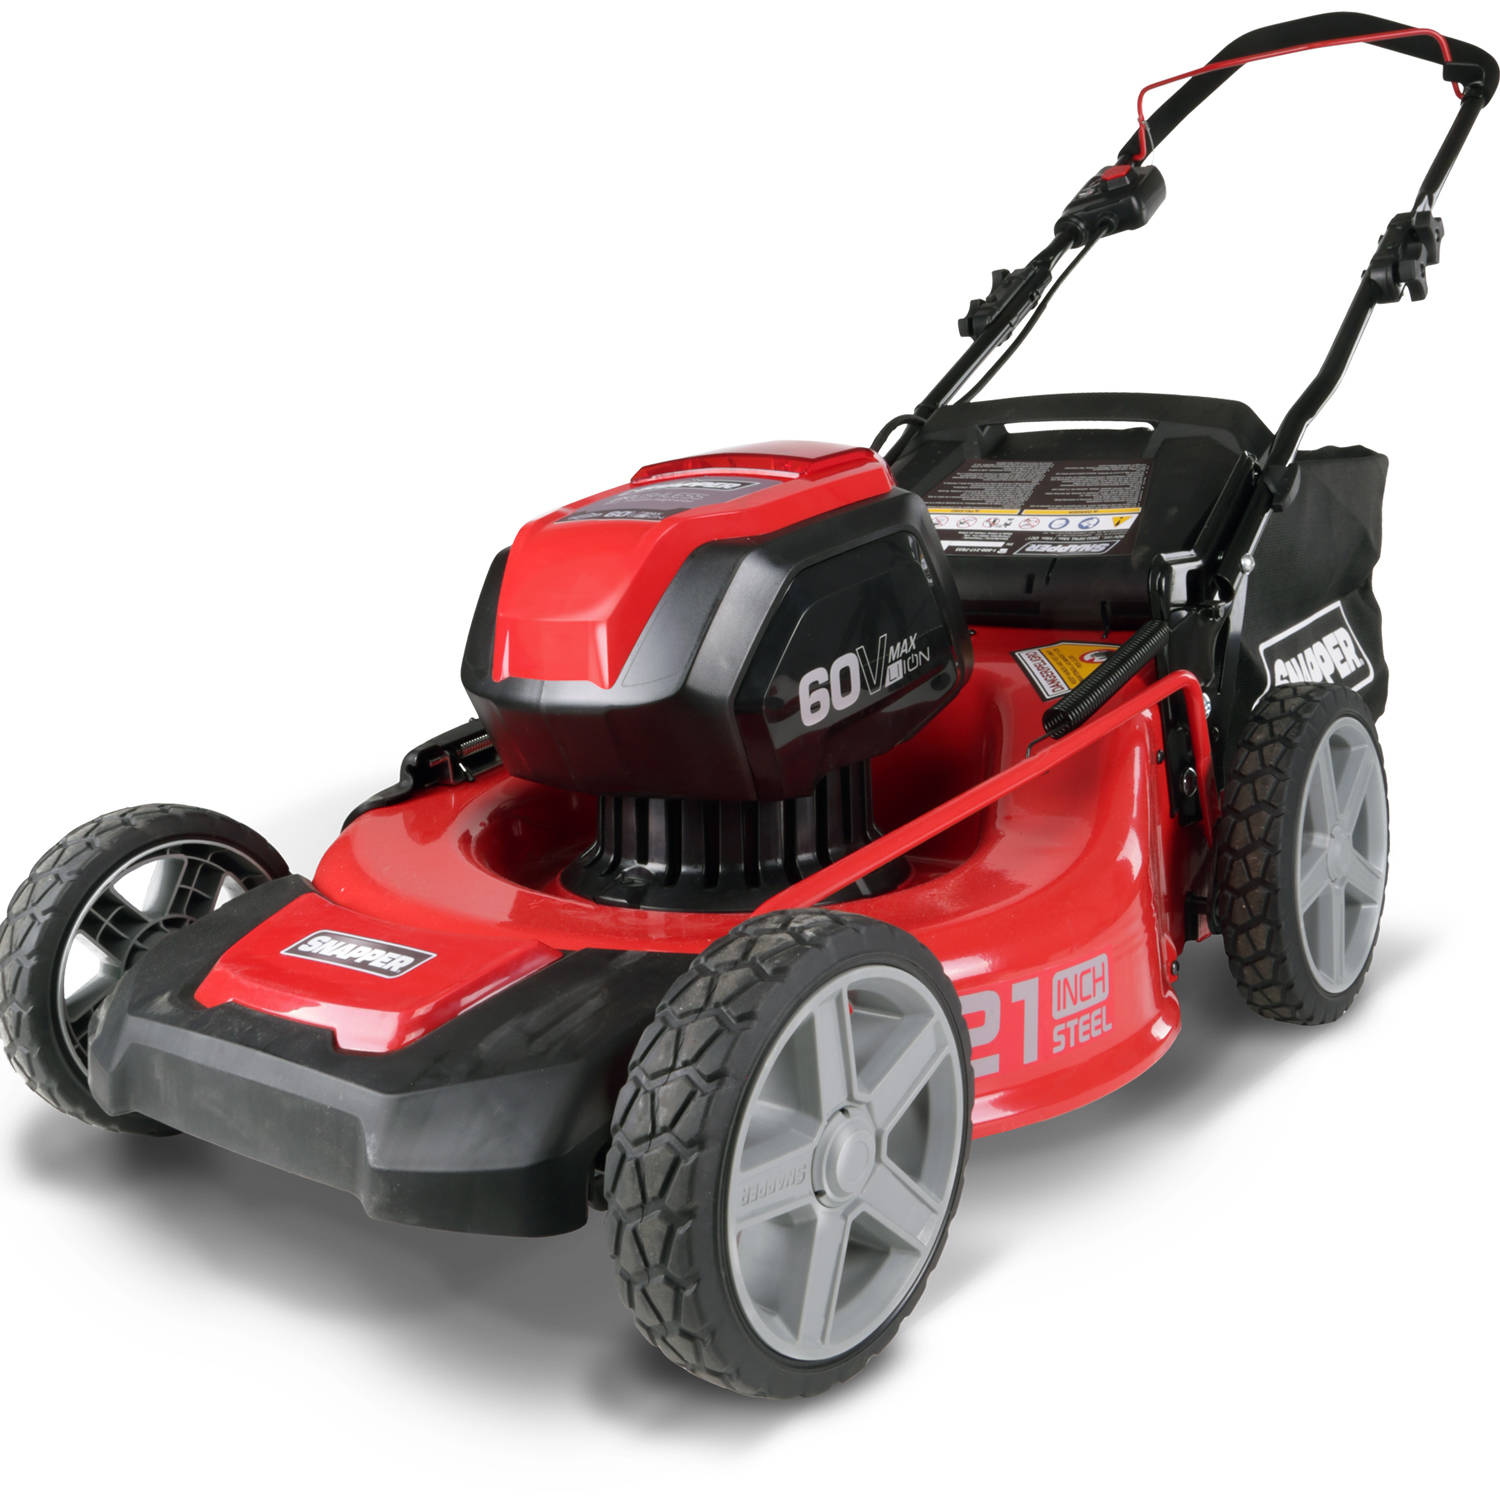 Greenworks mower 60v